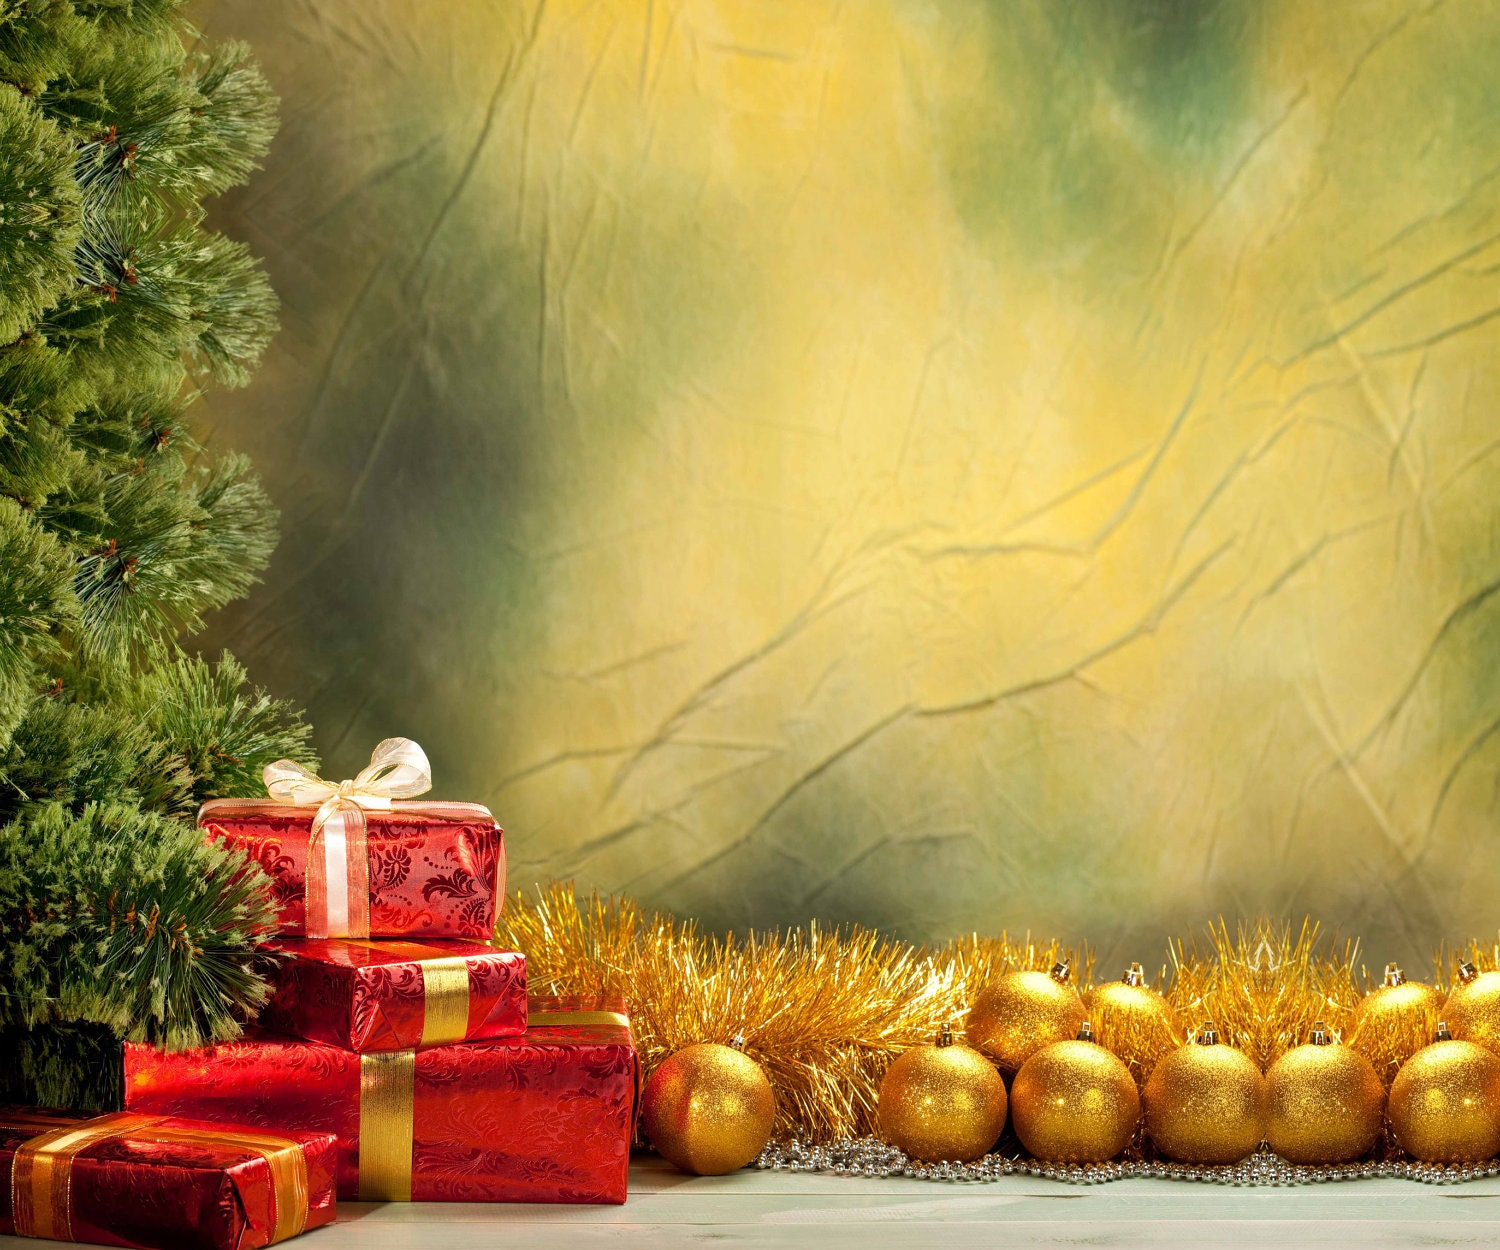 31 Free New Digital Photo Studio Backgrounds: Items Similar To Vinyl Backdrop Christmas Photography Vinyl Backdrops Props 5x5 Feet On Etsy